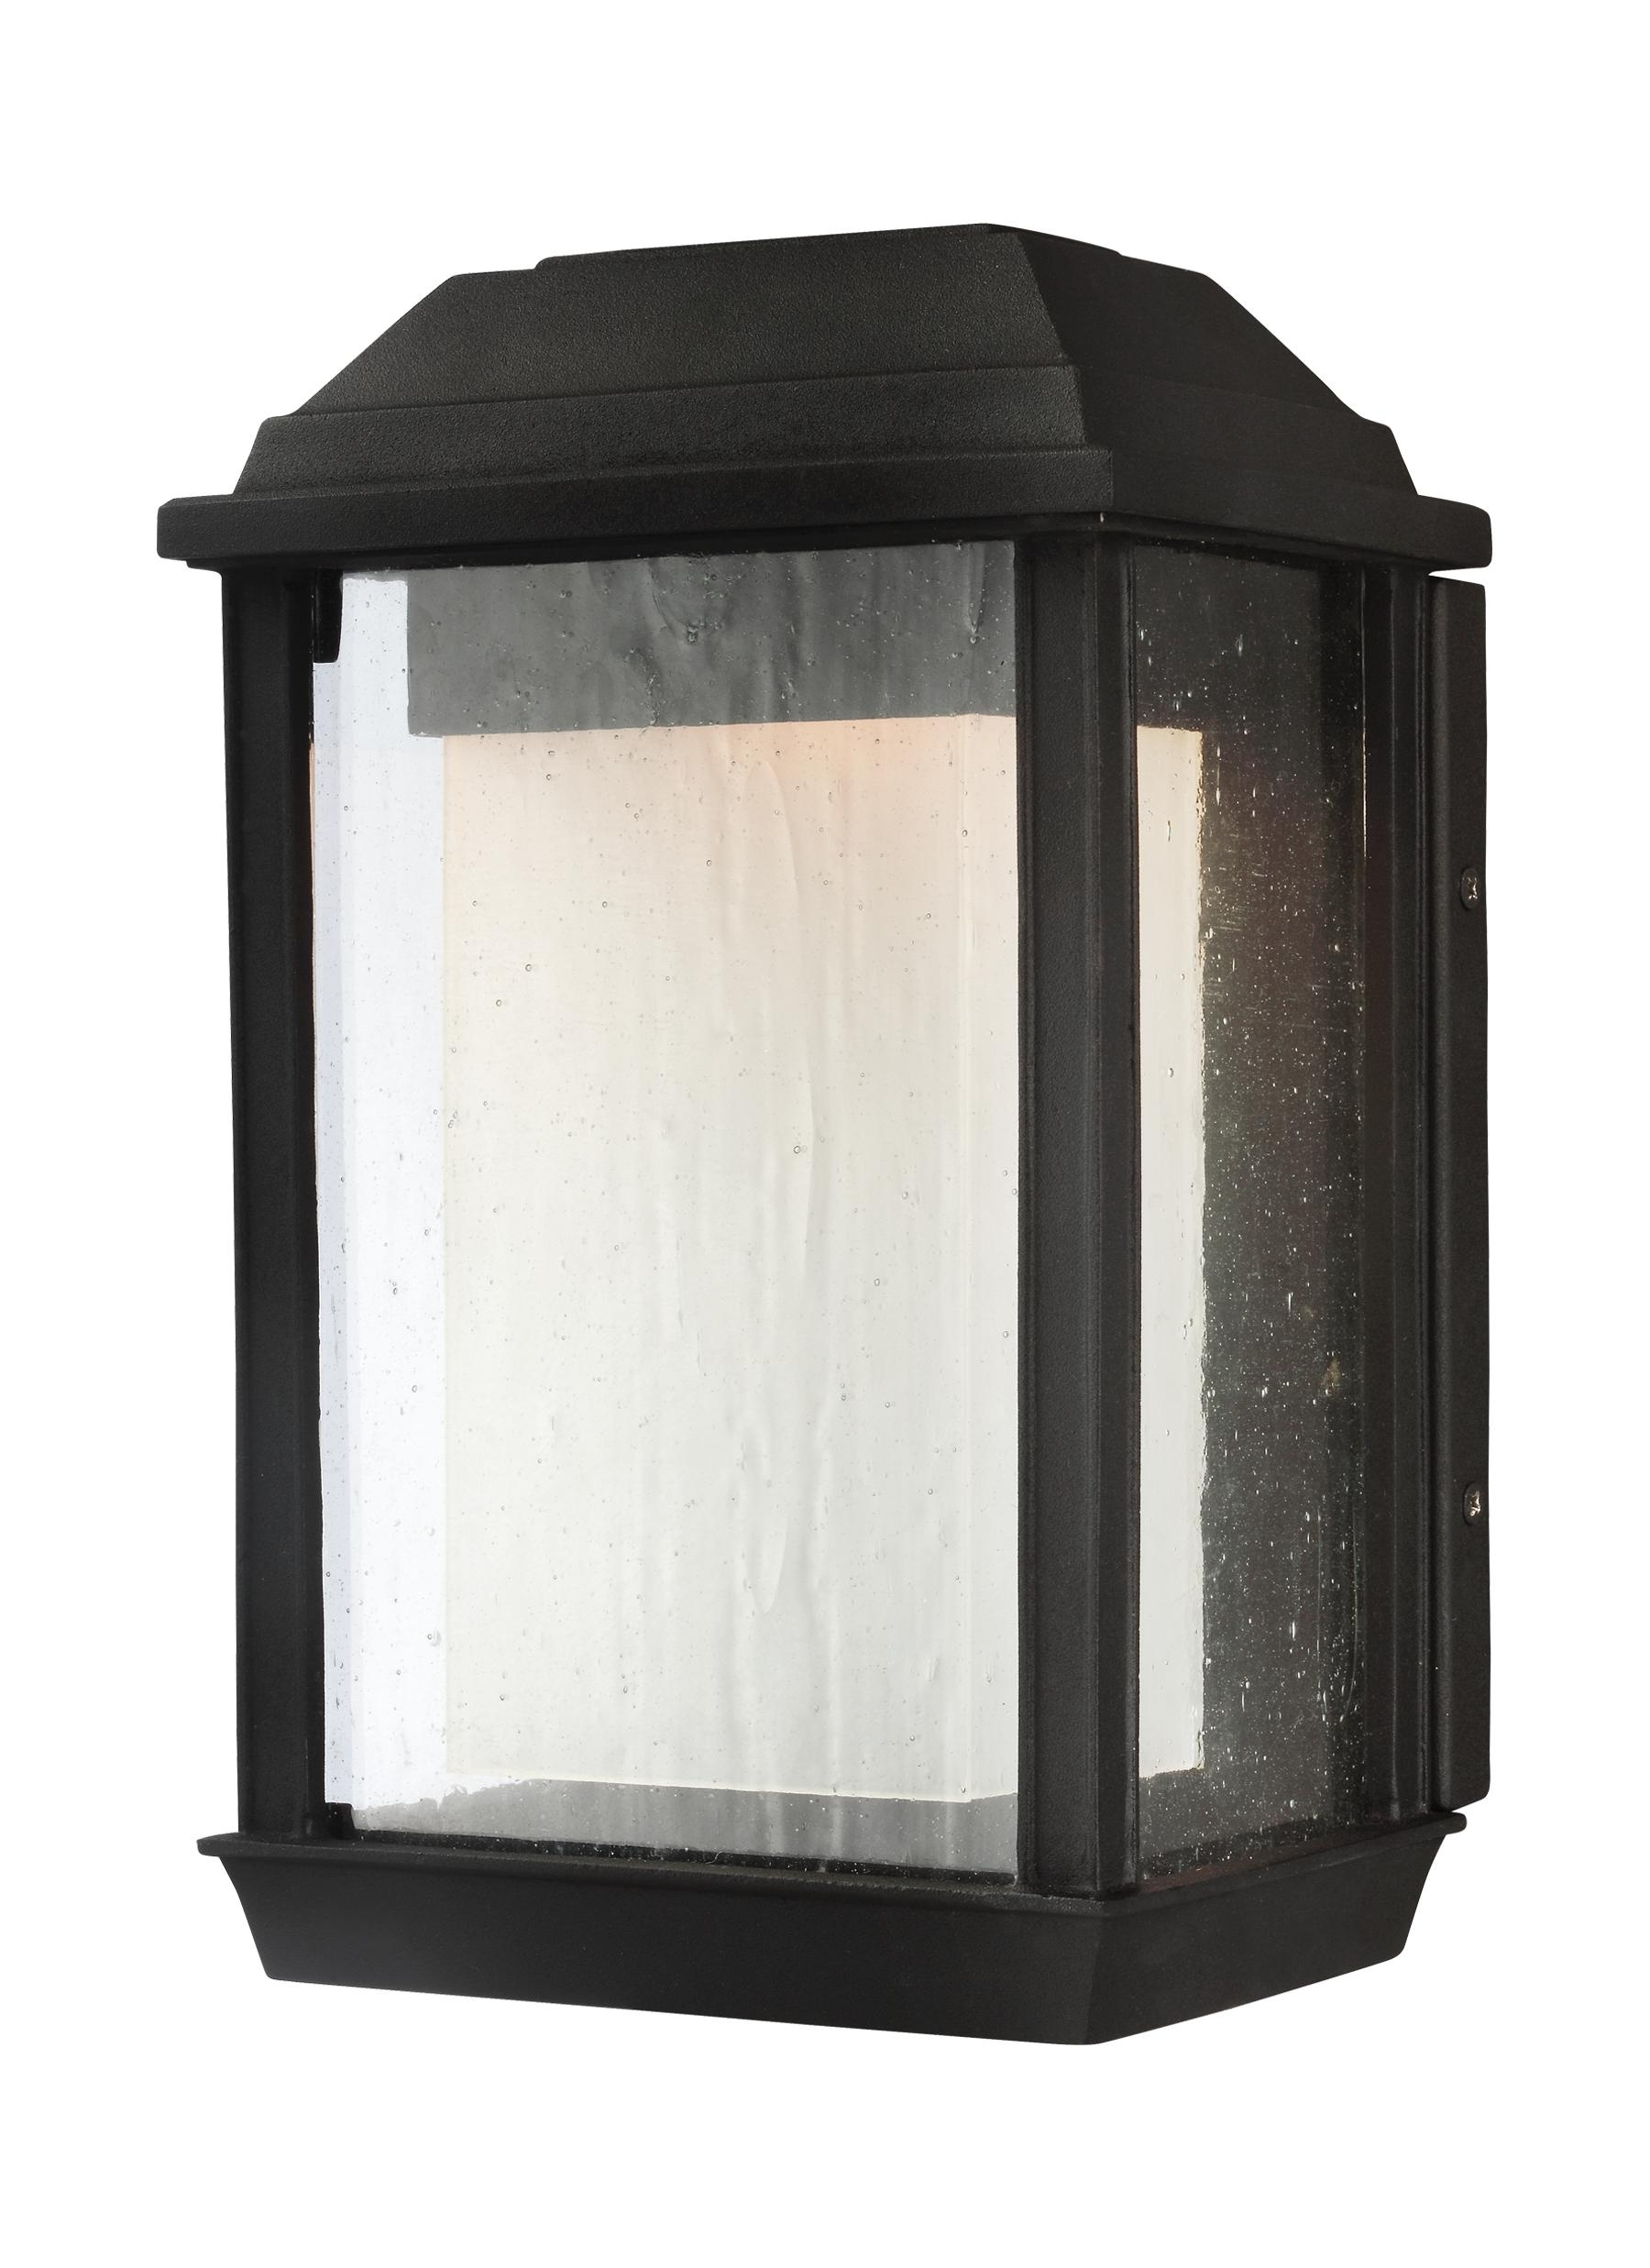 Outdoor Gazebo Lanterns For Recent Ol12800txb Led,1 – Light Outdoor Led Wall Lantern,textured Black (View 4 of 20)